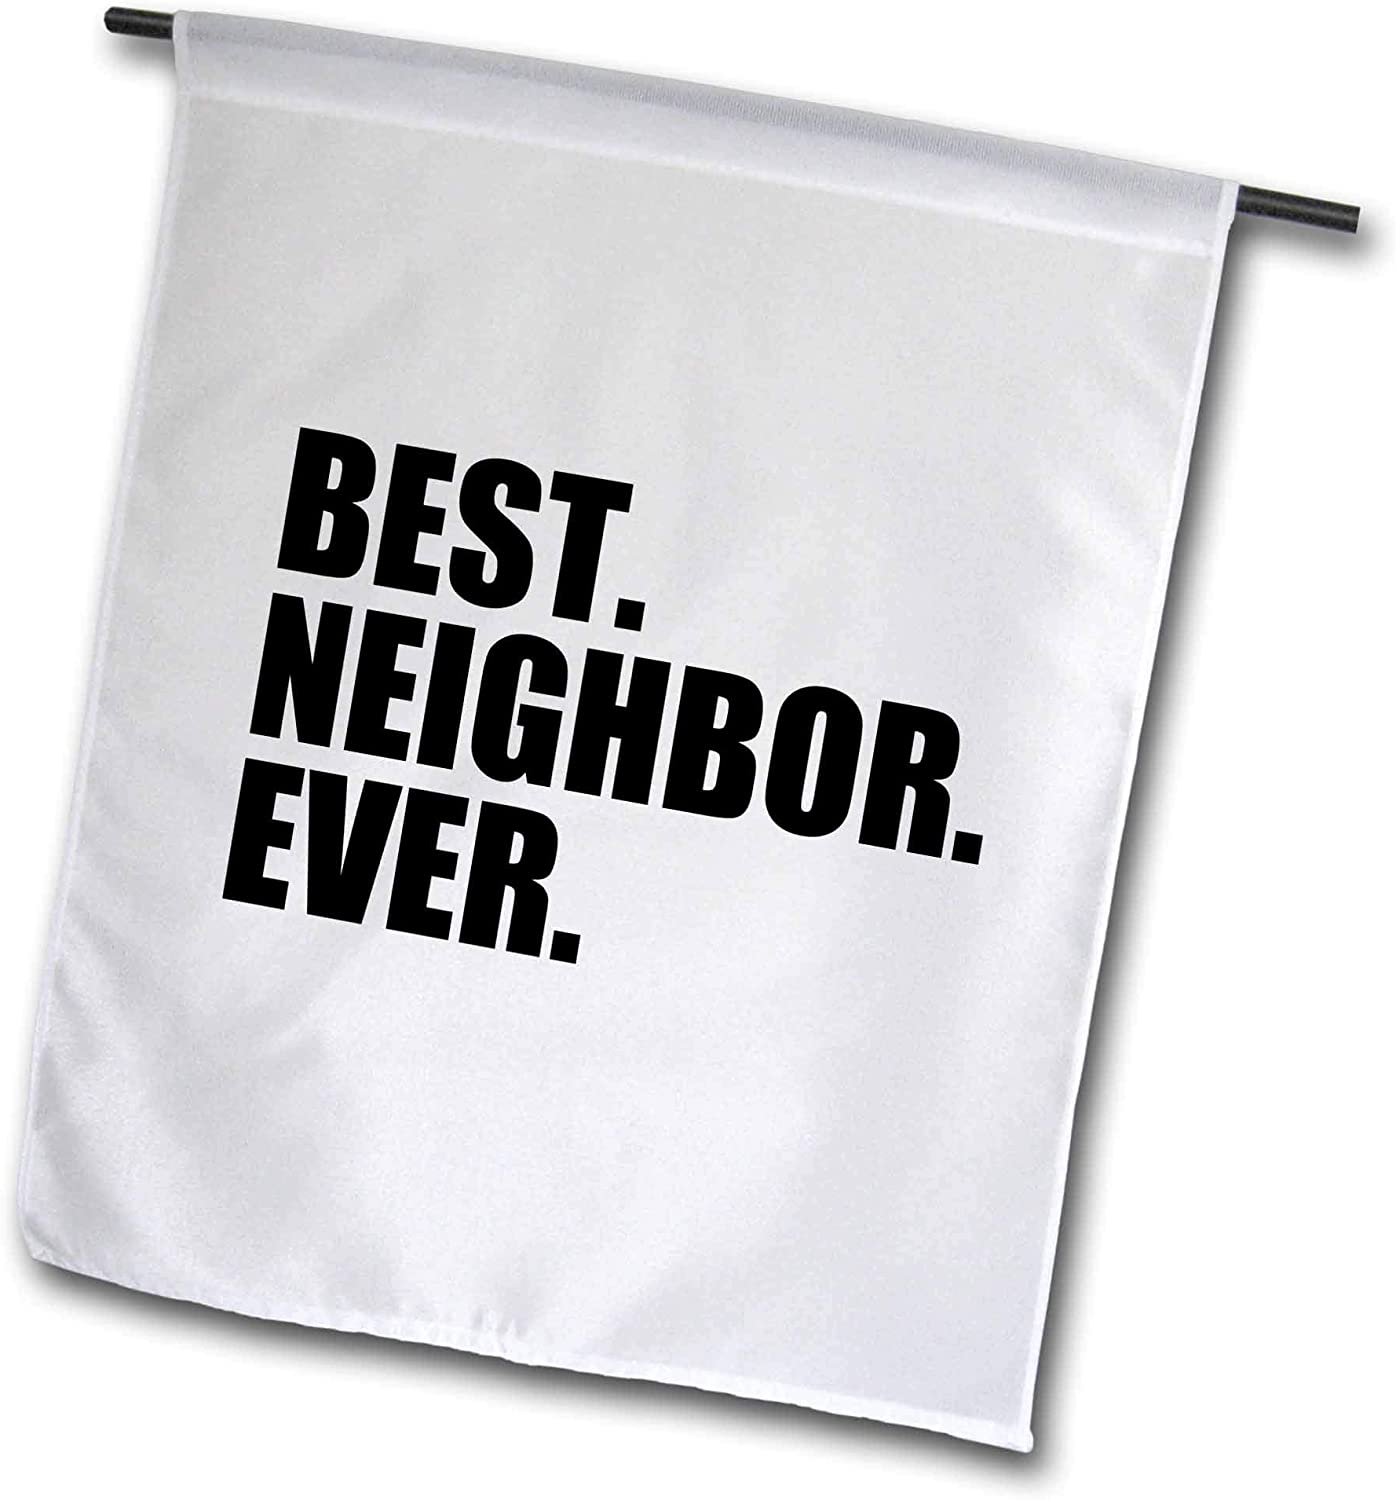 3dRose fl_151532_1 Best Neighbor Ever-Gifts for Good Neighbors-Fun Humorous Funny Neighborhood Humor Garden Flag, 12 by 18-Inch